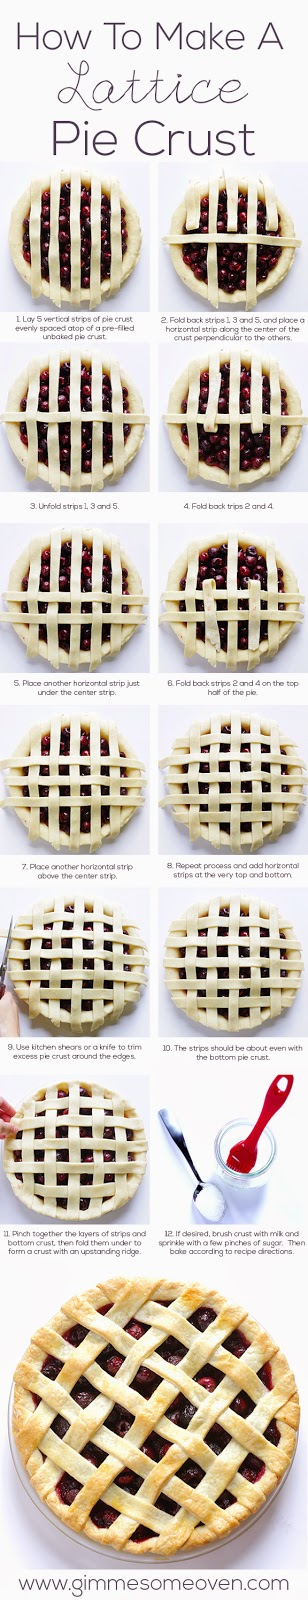 http://www.gimmesomeoven.com/how-to-make-a-lattice-pie-crust/#_a5y_p=1716007